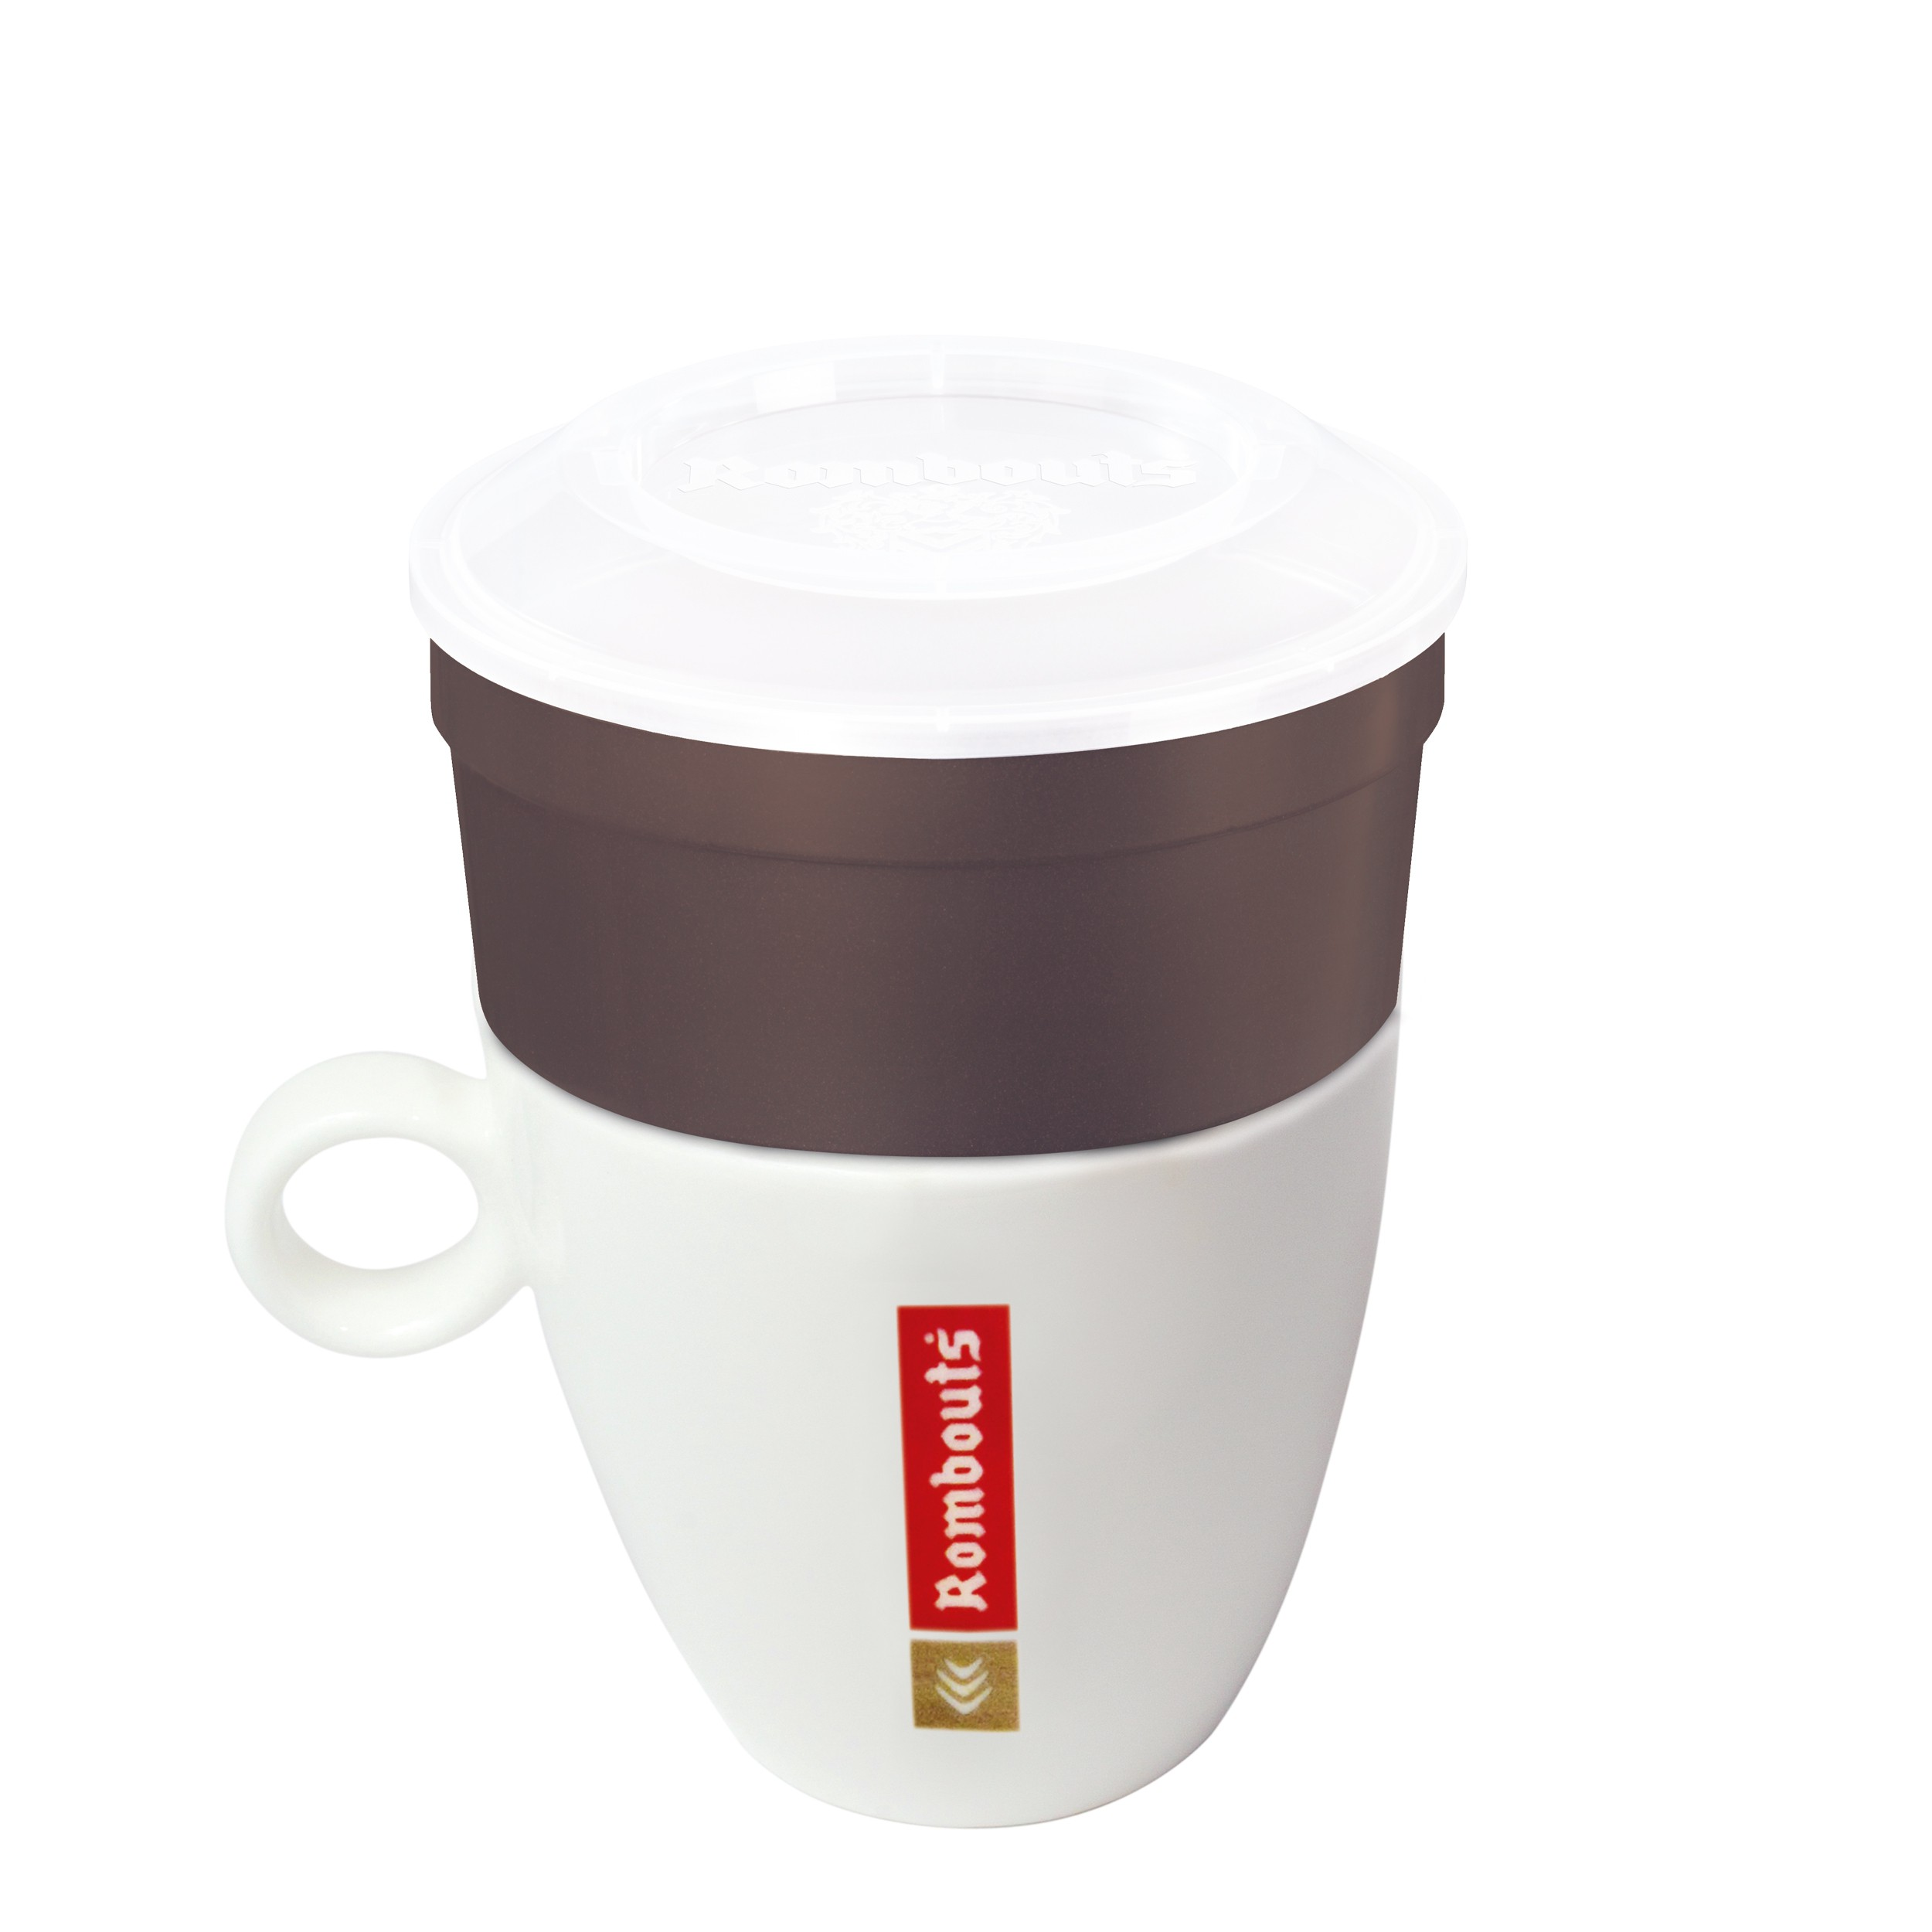 Original One Cup Filter Coffees